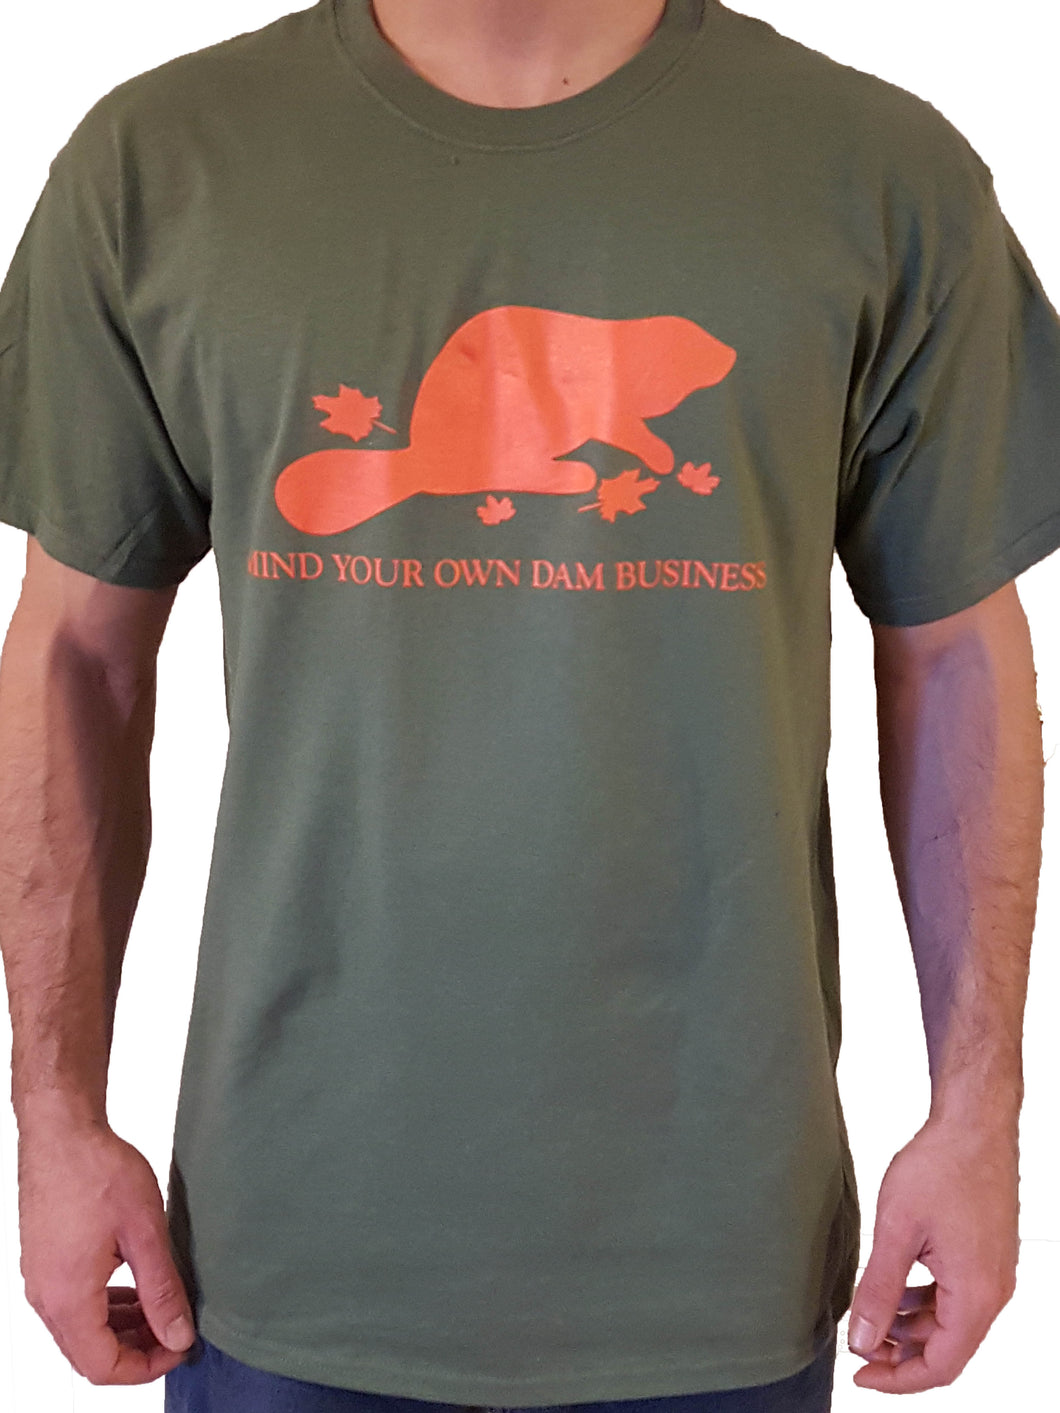 Short Sleeve Mind Your Own Dam Business T-Shirt - Olive Drab & Blaze Orange